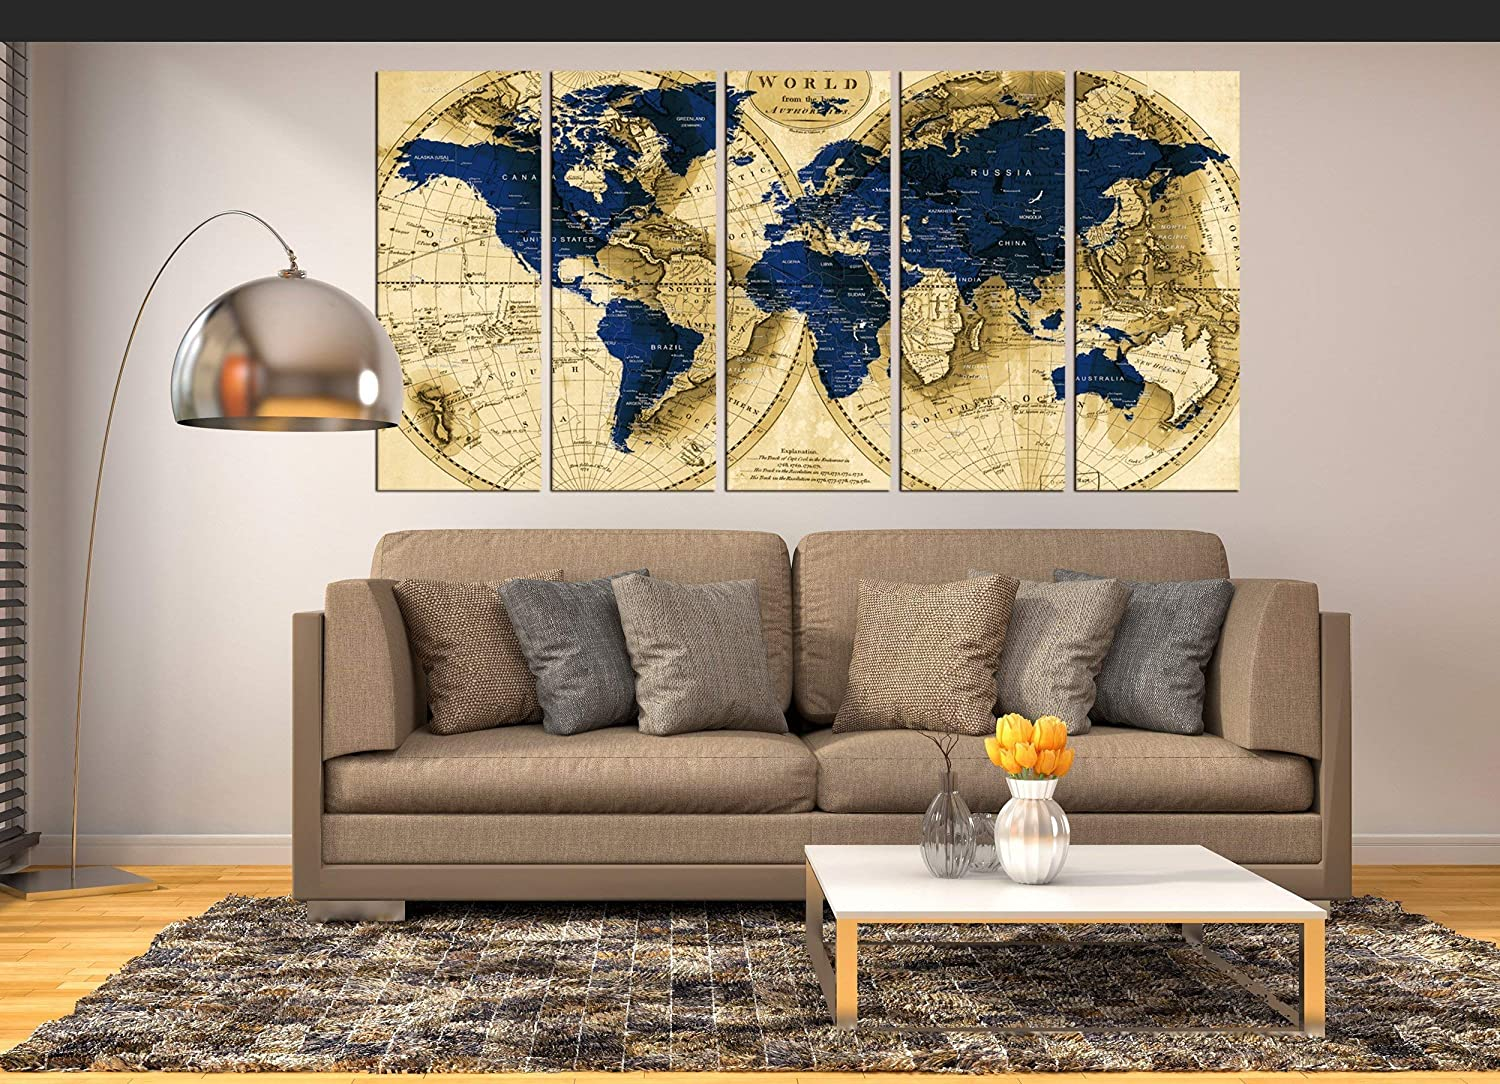 Extra Large Wall Art Navy Blue World Map Canvas Print, Push Pin World Map  Wall Art Canvas Print multi panel 14 pieces for dining room wall decal,  Large